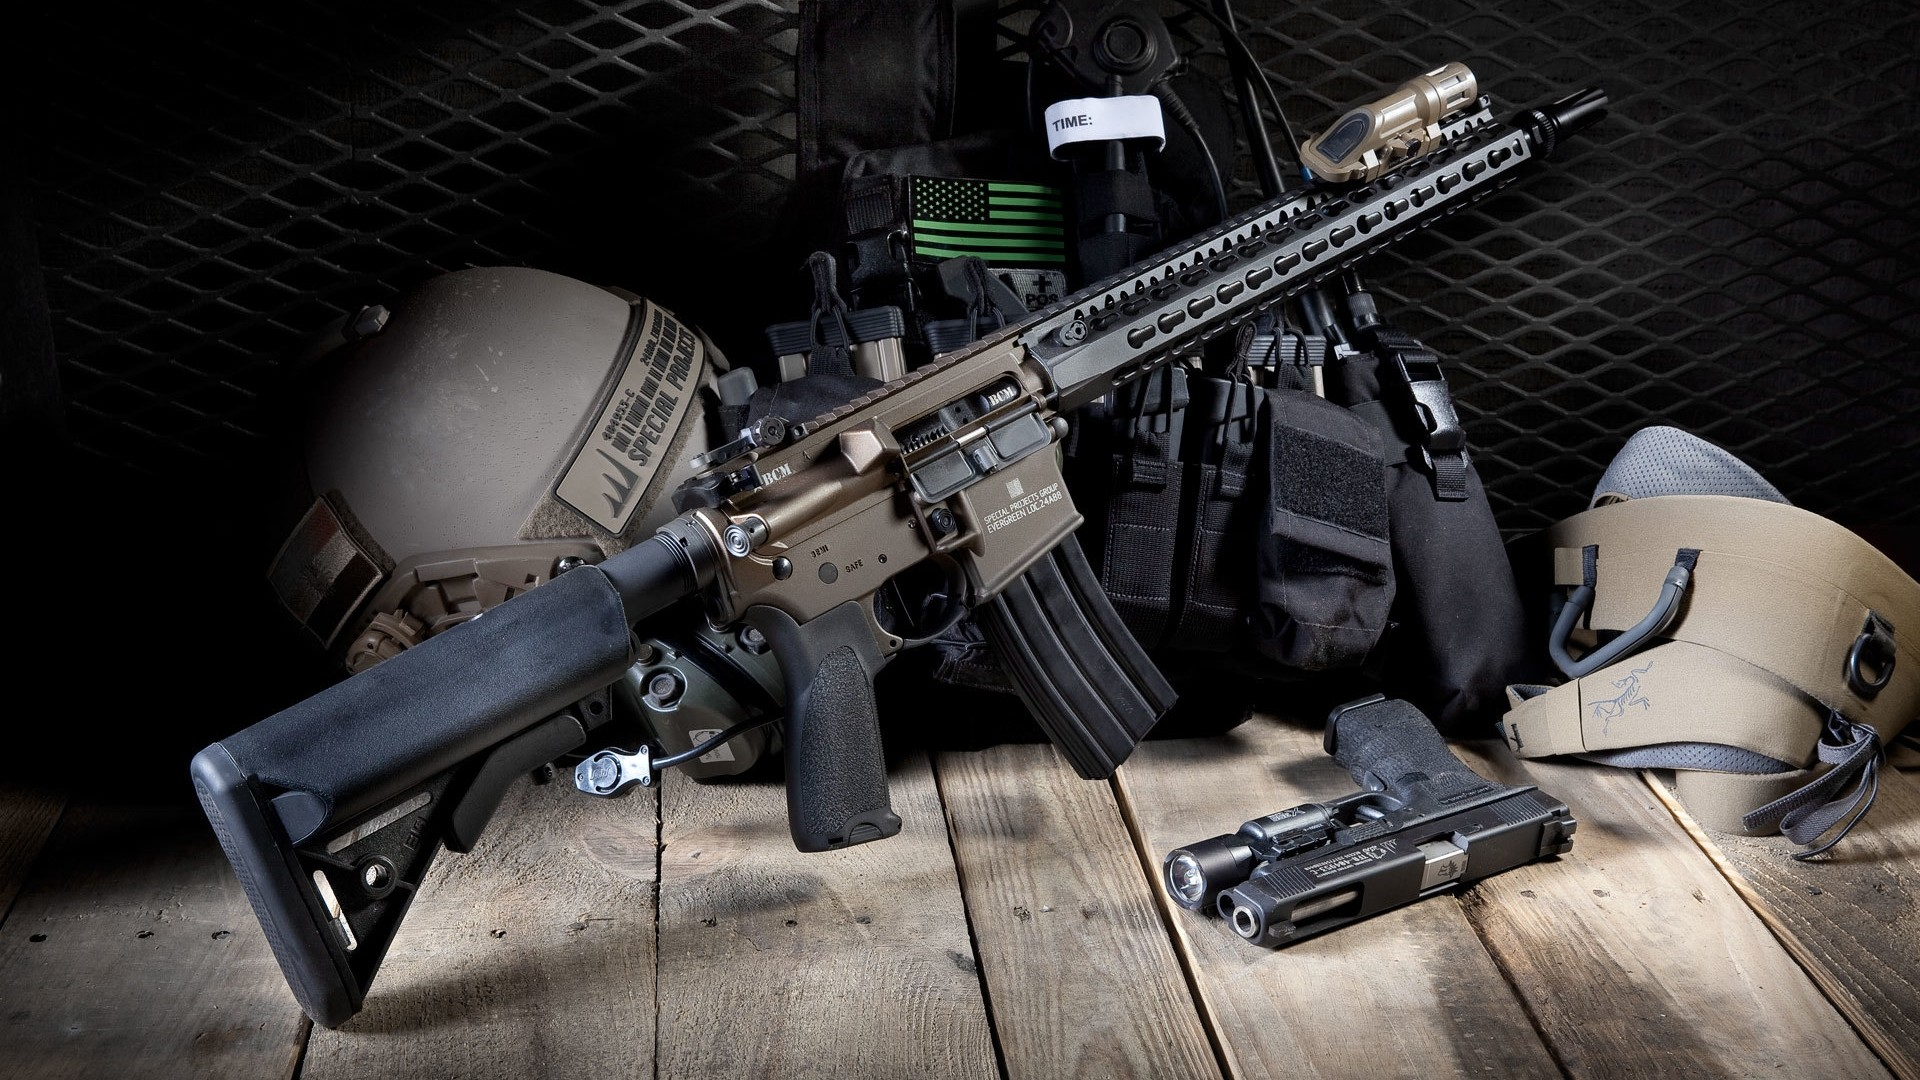 Ar 15 Guns Military PicsFabcom   Desktop Wallpapers 1920x1080